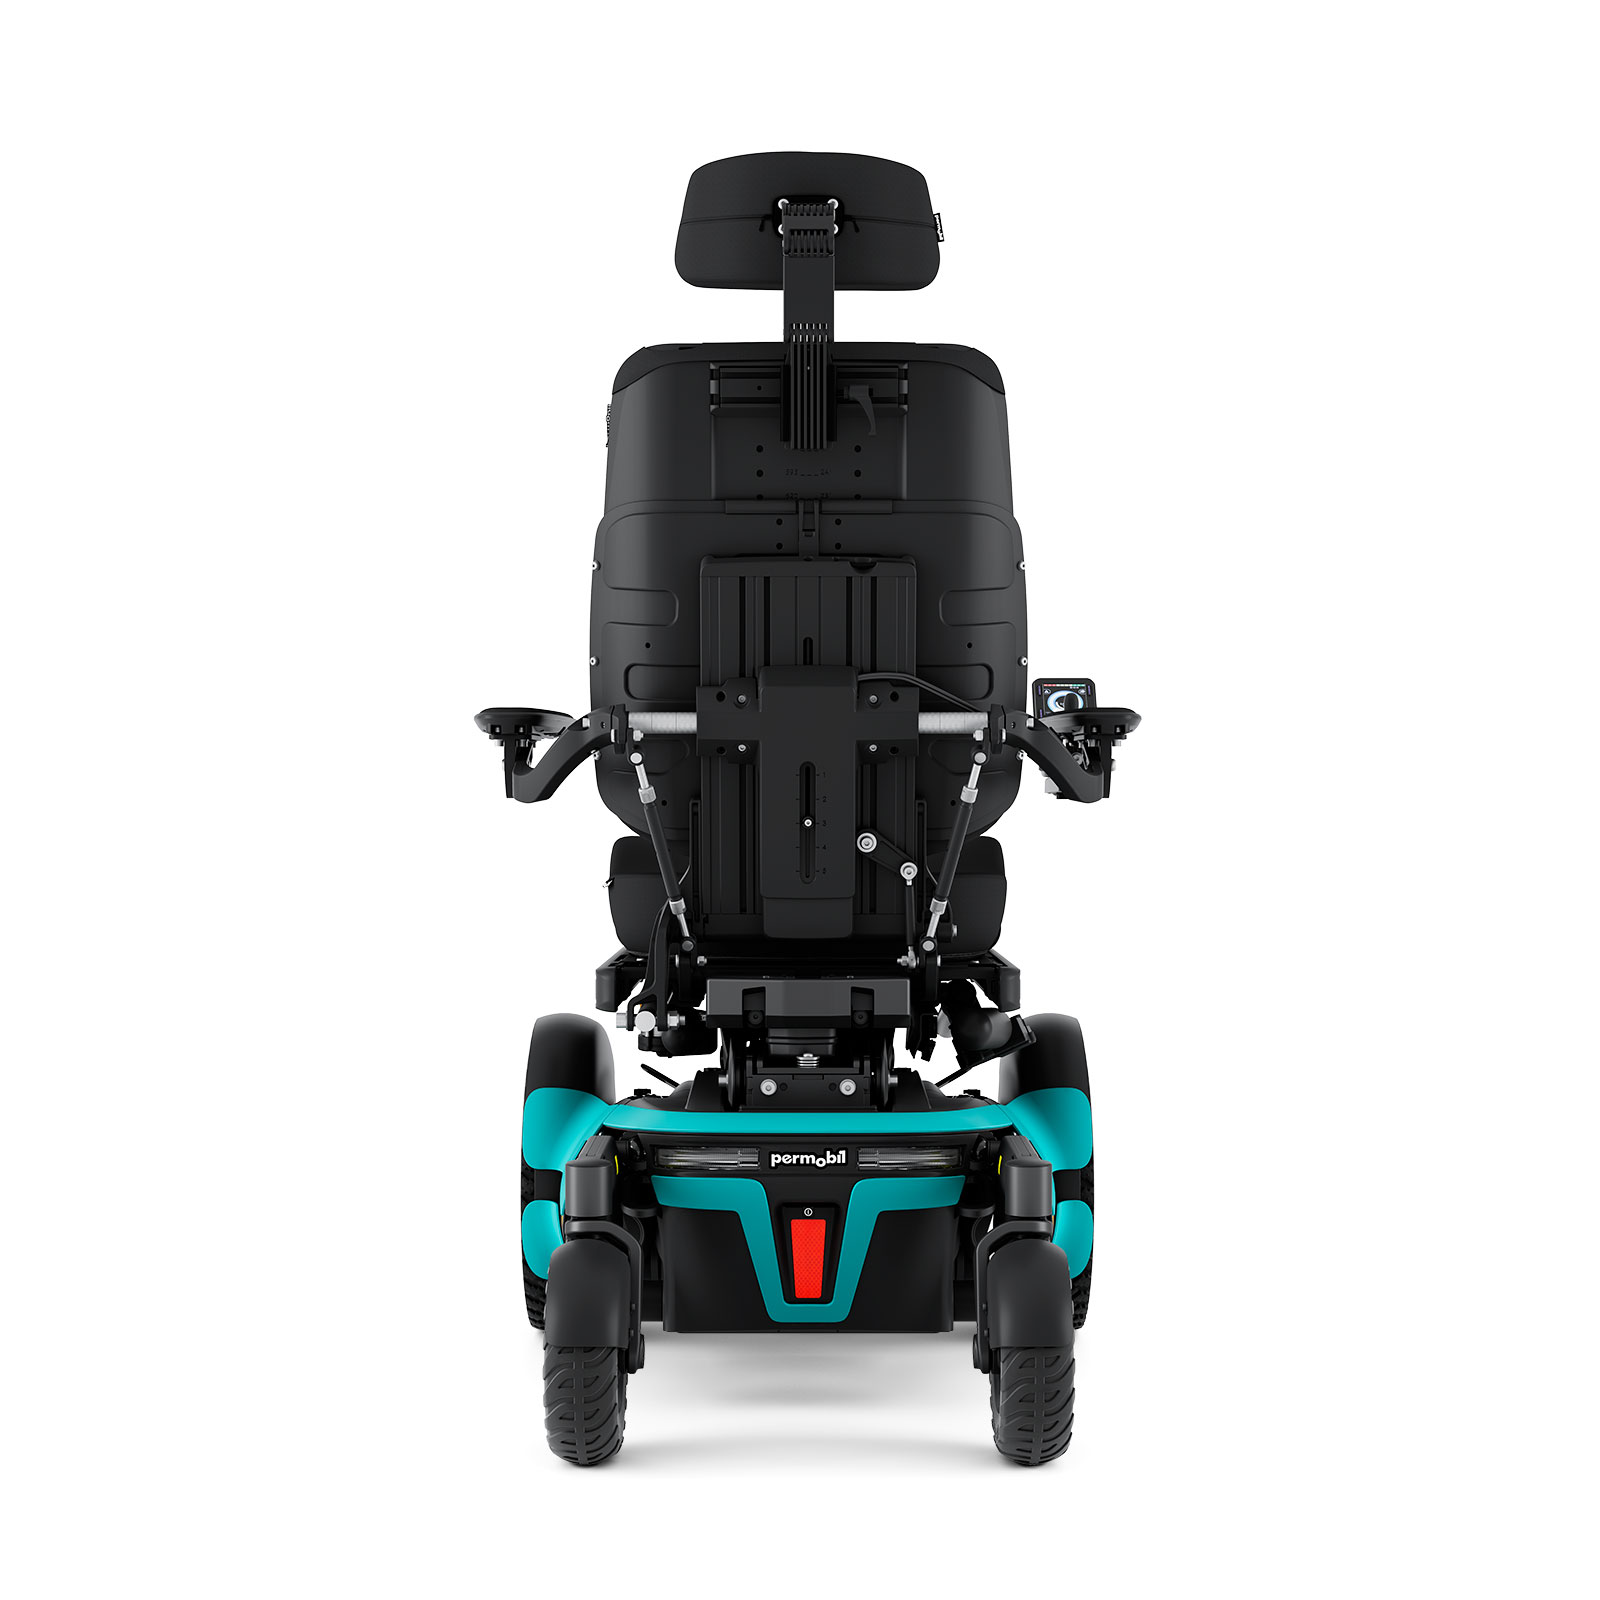 f5 corpus outdoor/indoor powerchair in aqua blue